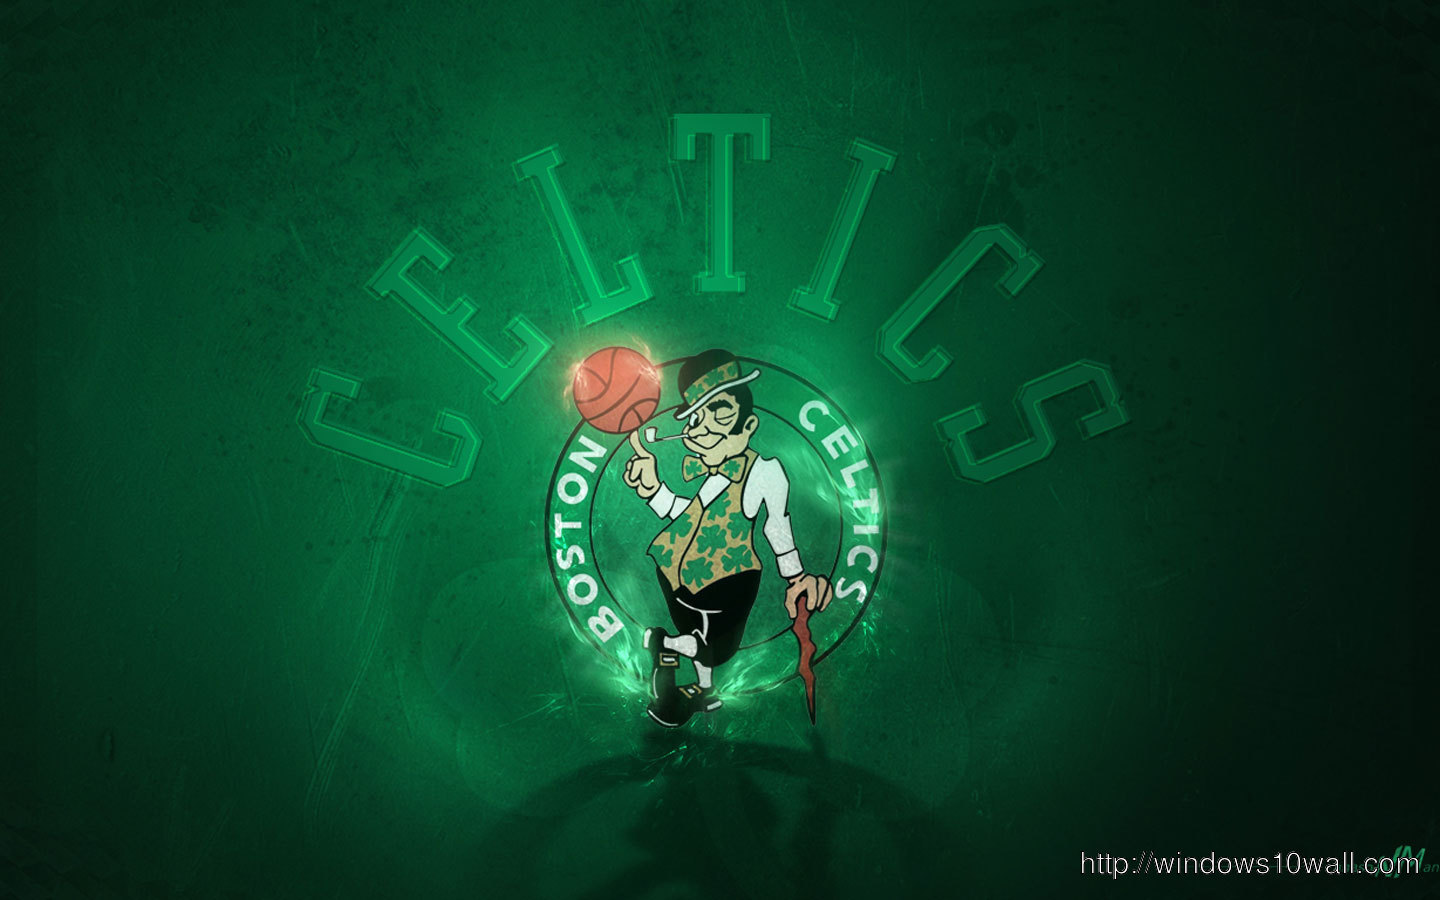 Boston Celtics Logo Hd Wallpaper Windows 10 Wallpapers